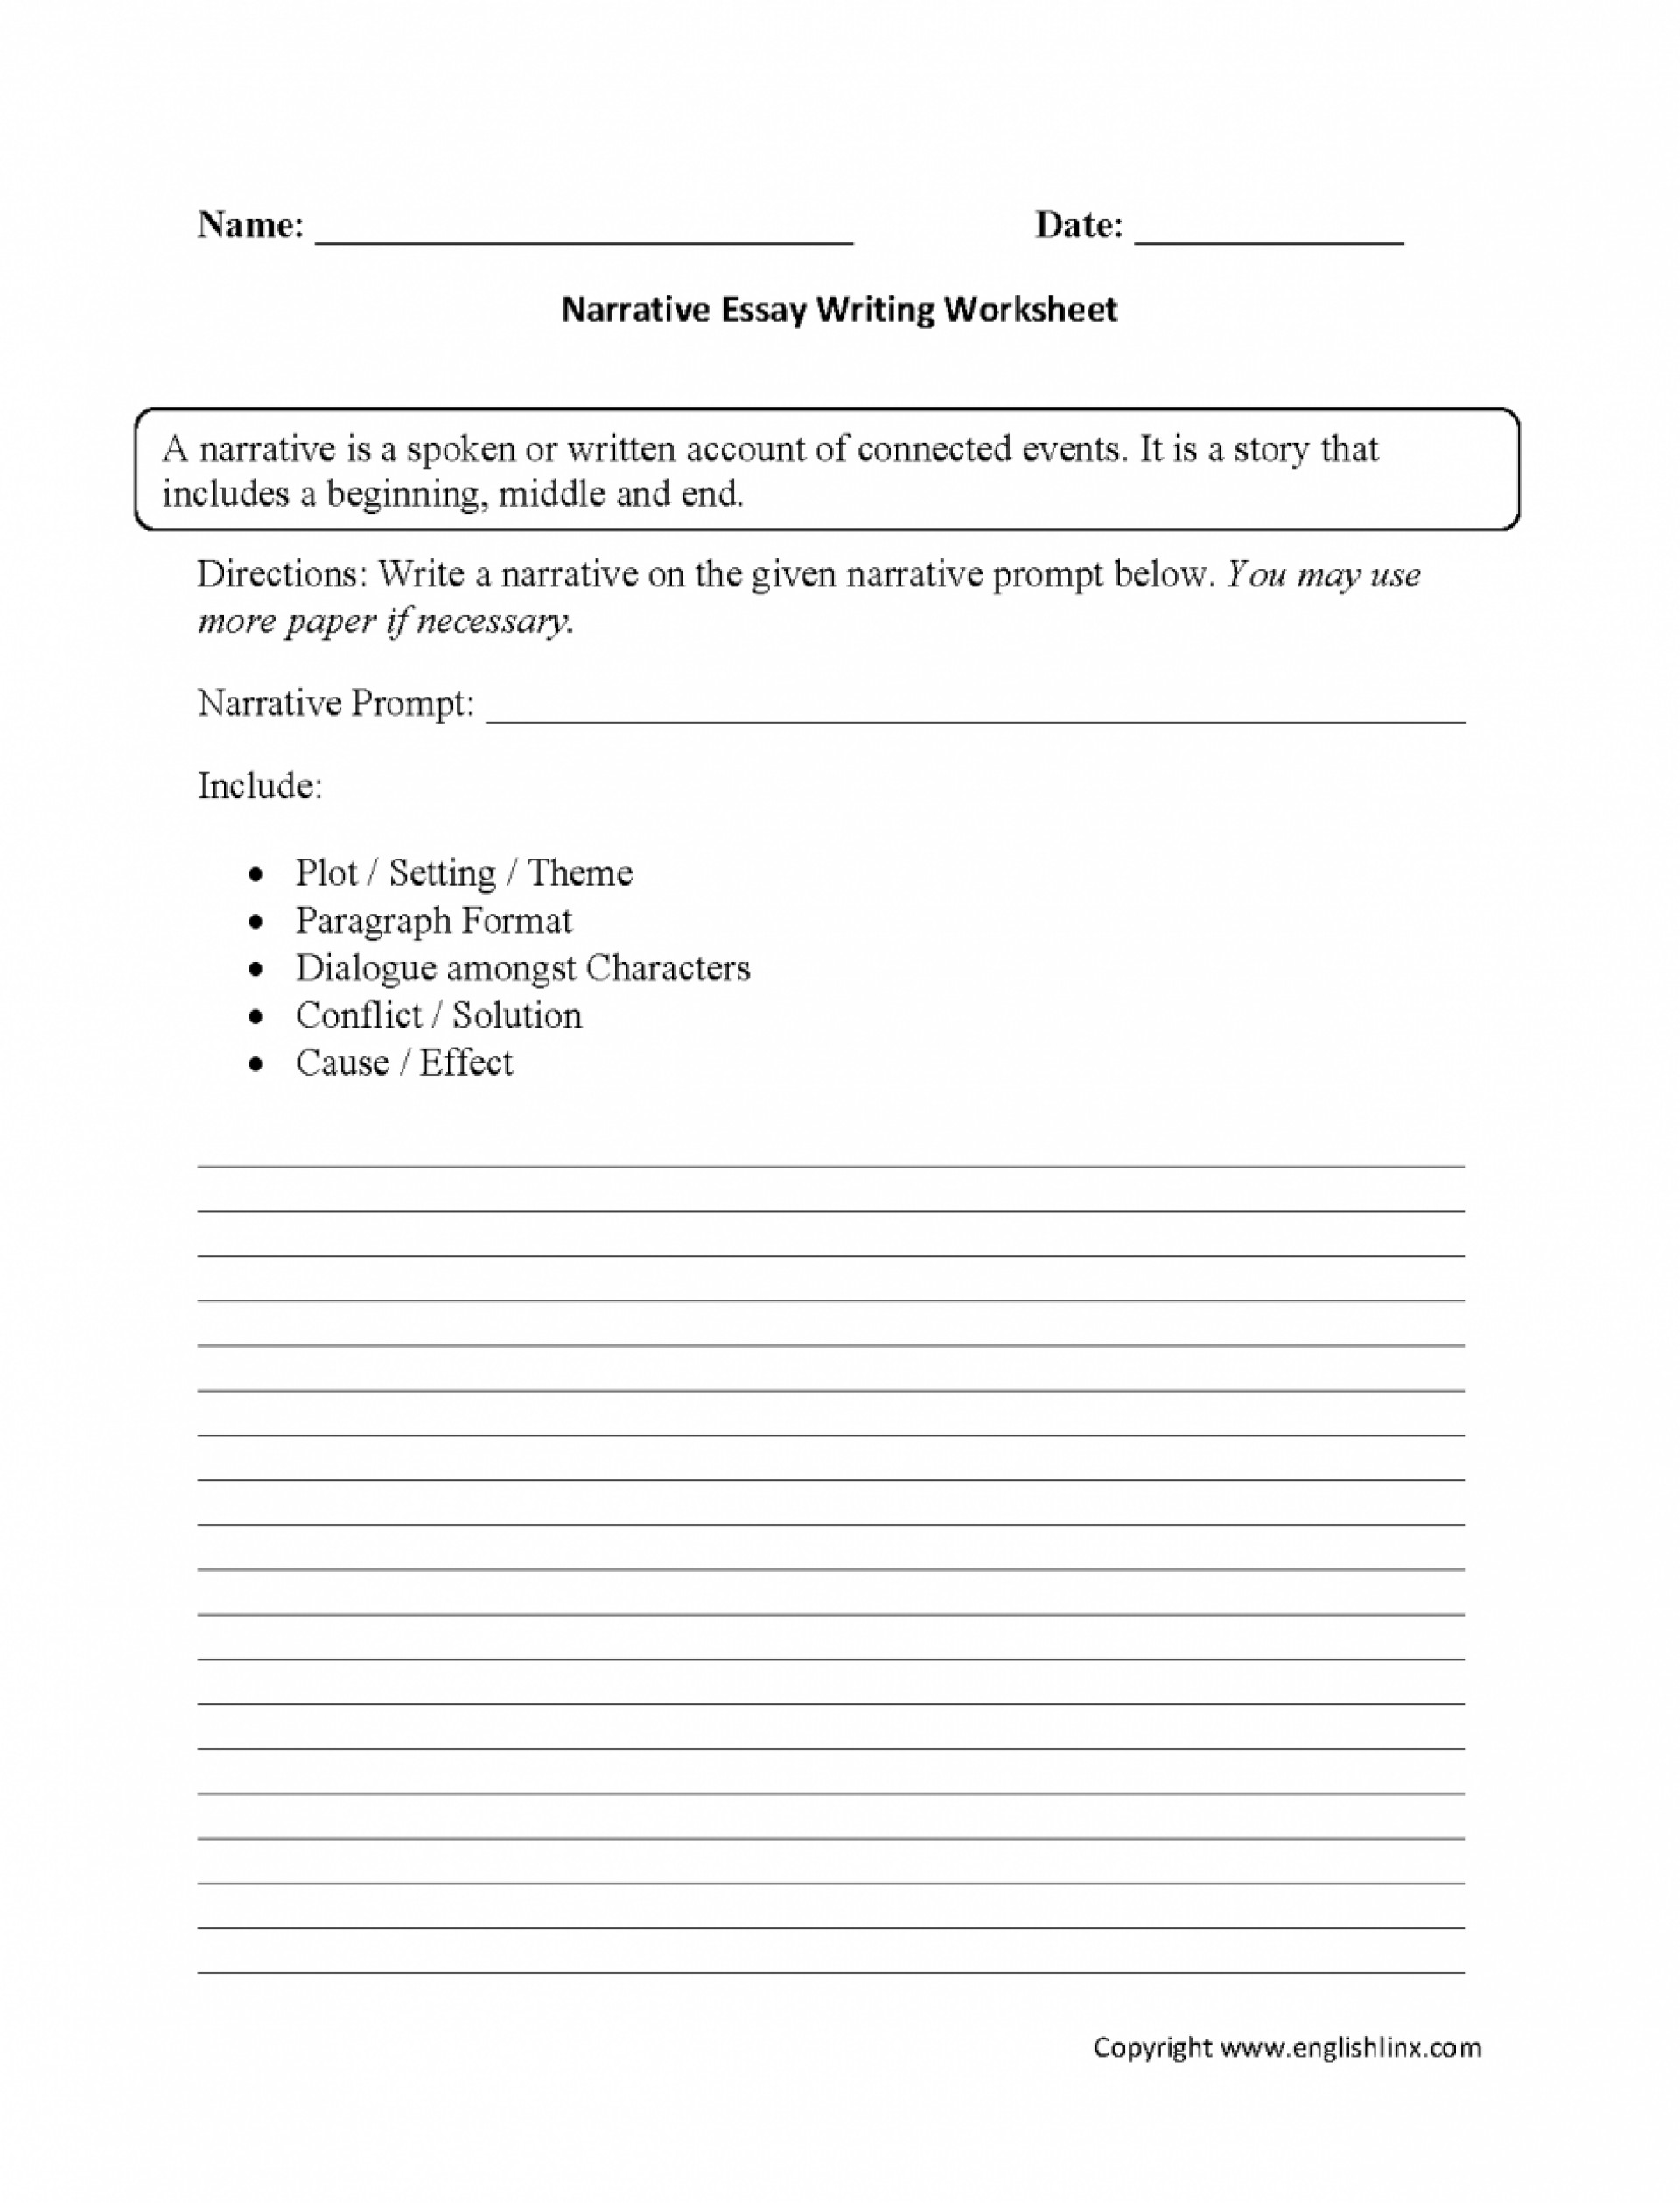 002 Essay Grader Example 3rd Grade Paragraph Writing Worksheets Download Free Third Printa Worksheet Awful Online For Teachers Calculator 1920